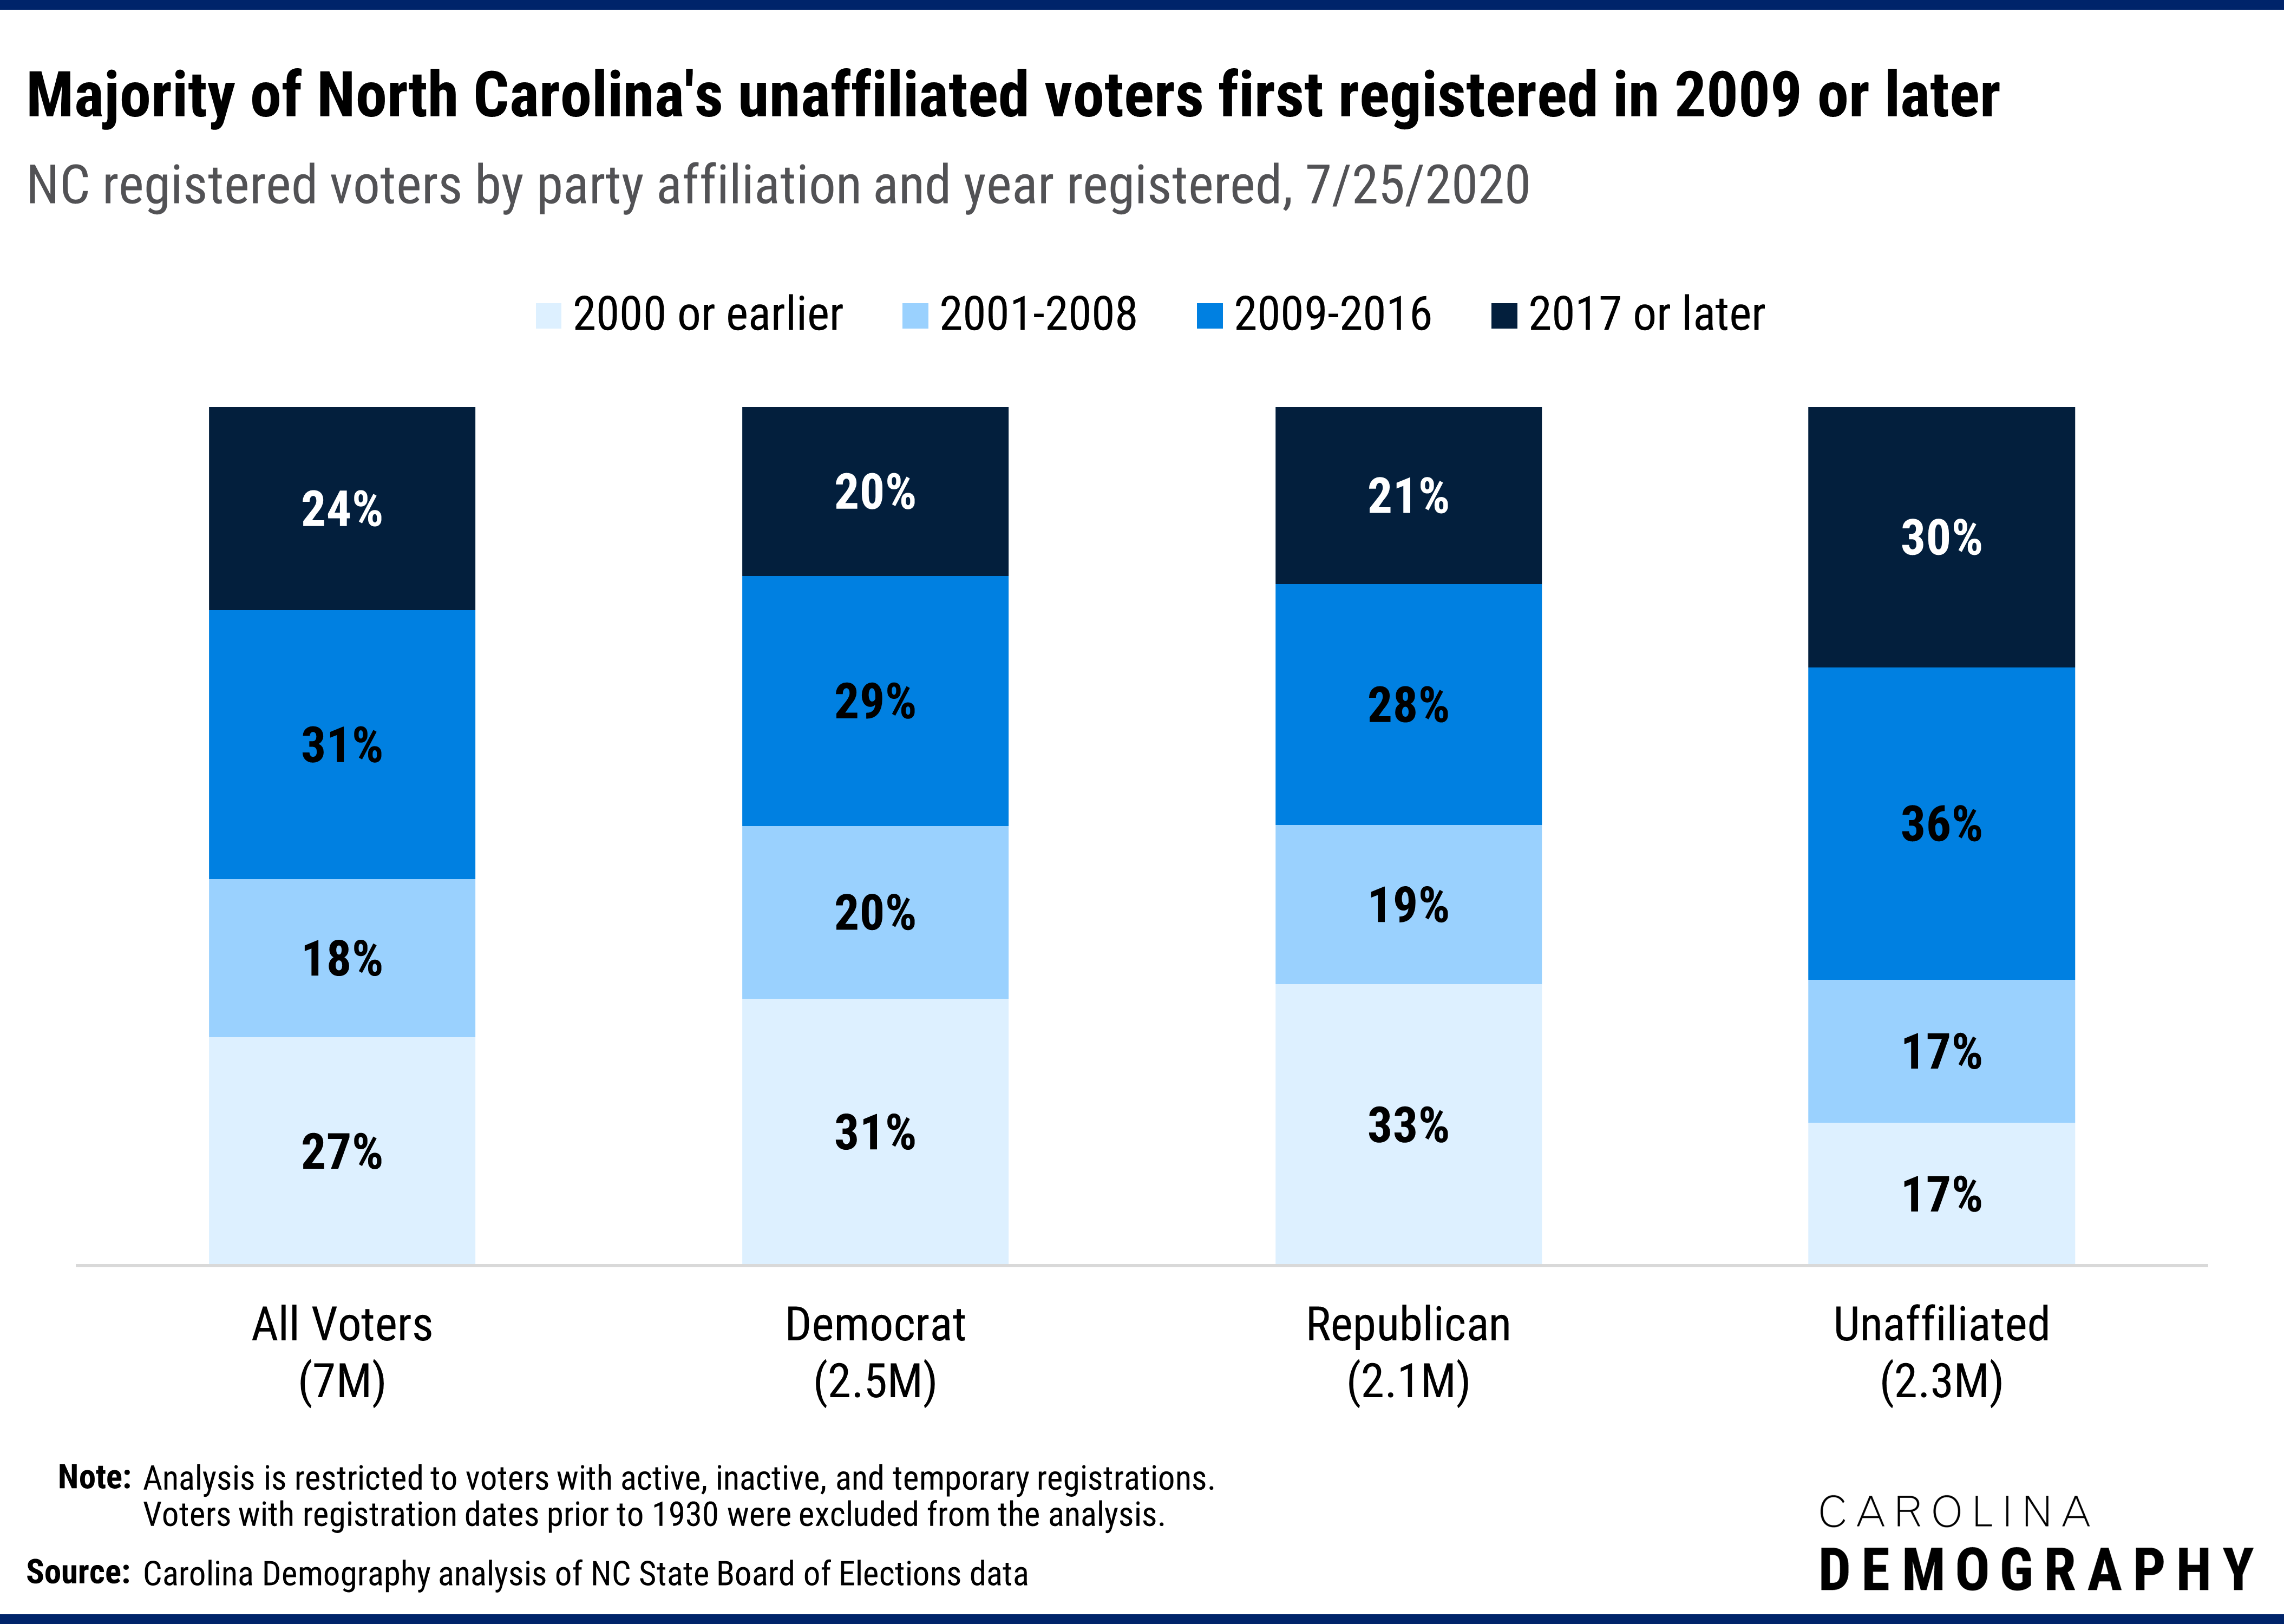 Majority of North Carolina's unaffiliated voters first registered in 2009 or later NC registered voters by party affiliation and year registered, 7/25/2020. Two-thirds of unaffiliated voters first registered between either 2009-2016 (36%) or in 2017 or after (30%); less than half of Democrat and Republican voters registered in 2009 or later. This reflects two factors: first, age group differences in partisan affiliation and second, the rise of unaffiliated voters in recent years.